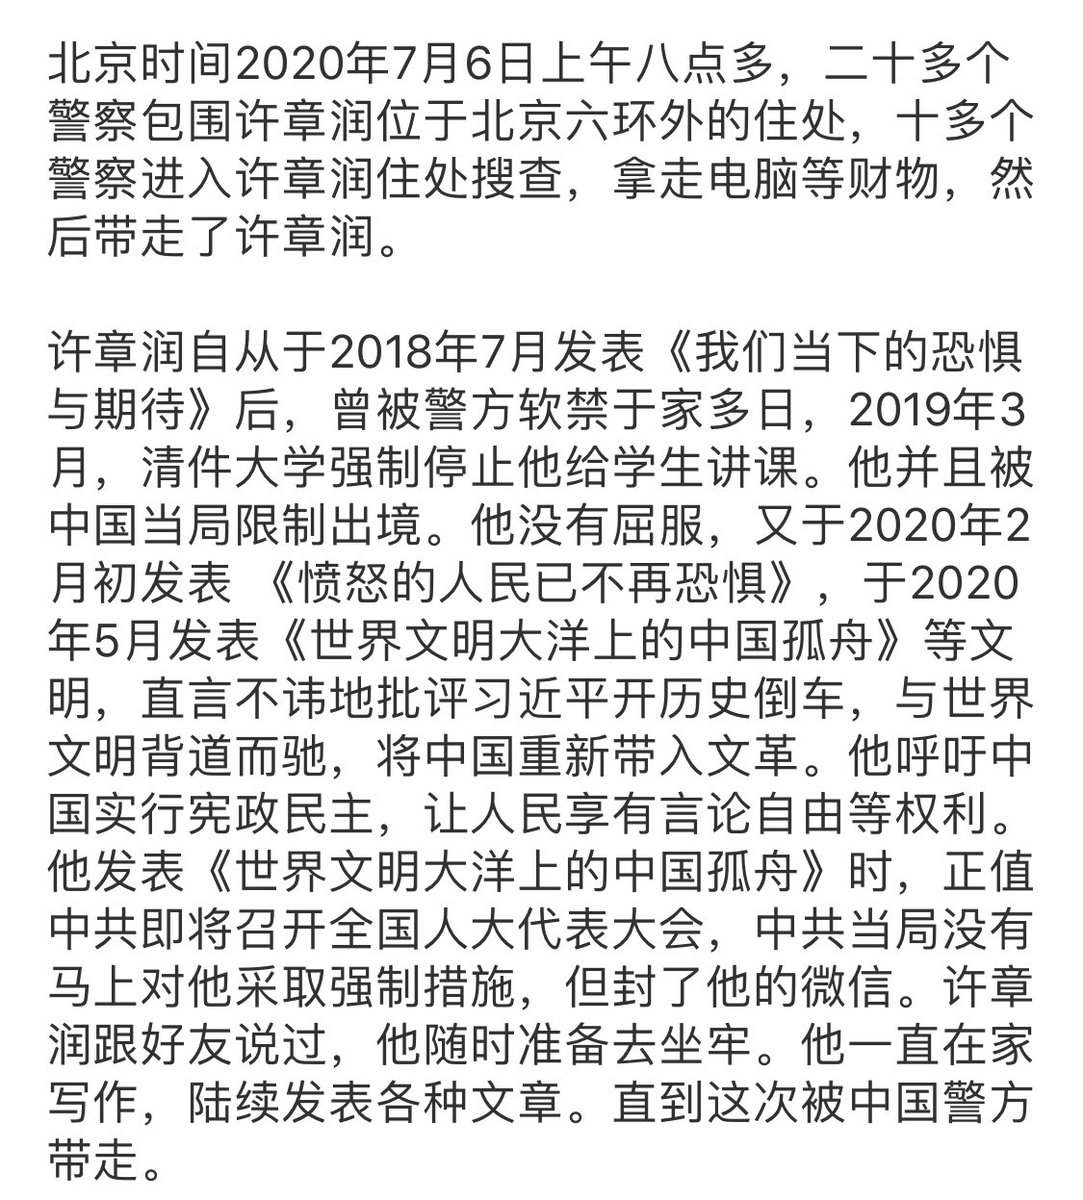 """BREAKING via Geremie Barmé @chinaheritage: """"Friends in Beijing report that this morning, local time, Professor Xu Zhangrun was formally detained. Some ten police vehicles and dozens of police officers were involved in the operation."""" More details: https://t.co/d1s2EaXwU4"""